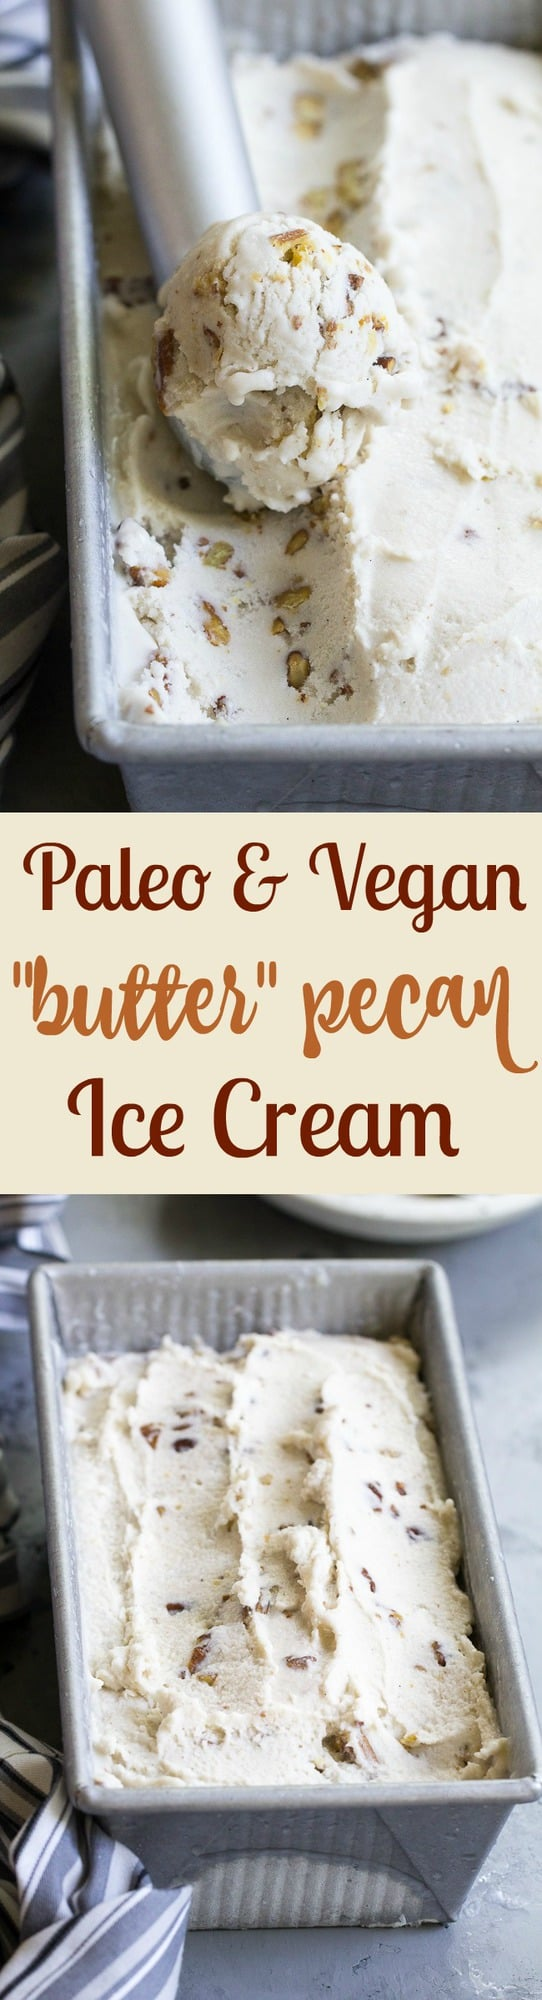 "This ""butter"" pecan vegan ice cream is thick, creamy and decadently sweet yet made with no refined sugar or dairy. You won't believe you're not eating the real thing once you taste it!  Paleo, vegan, gluten free, dairy-free."